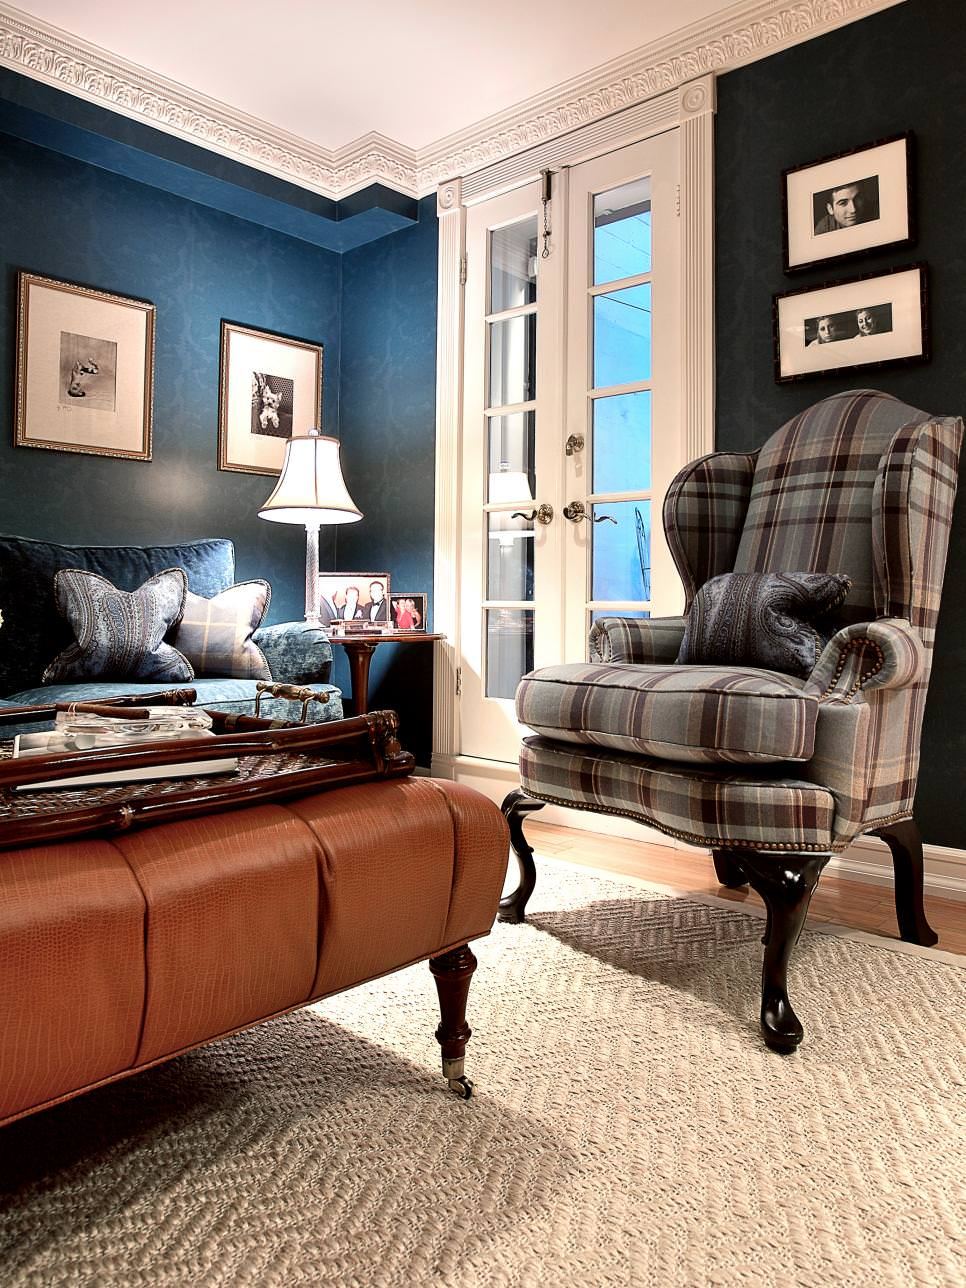 20 blue and brown living room designs decorating ideas for Black and brown living room designs